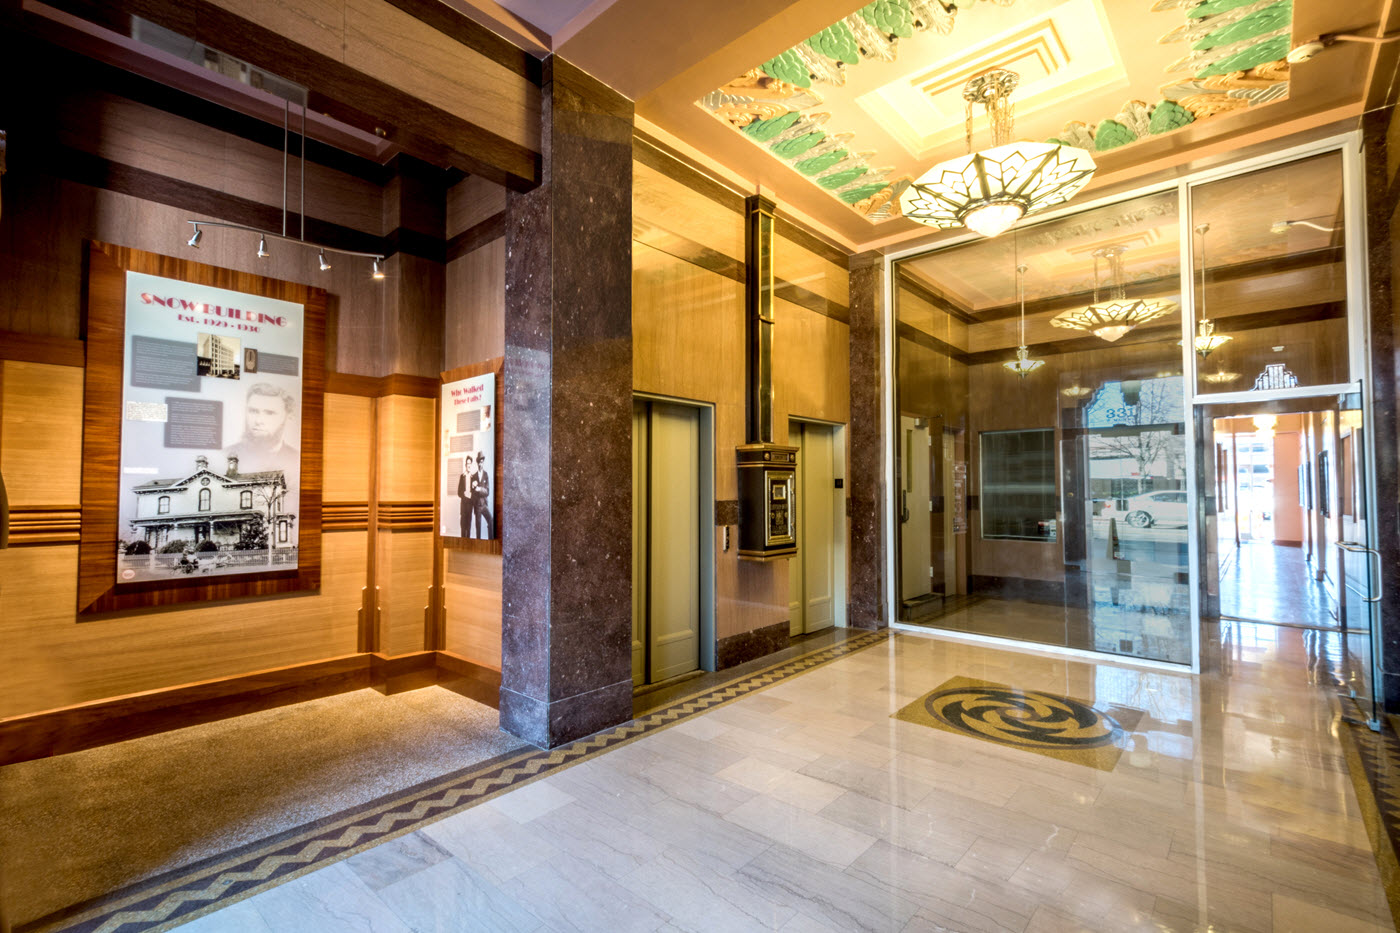 The Snow Building Lobby w Historical Exhibit and Lighting - hem and spire llc